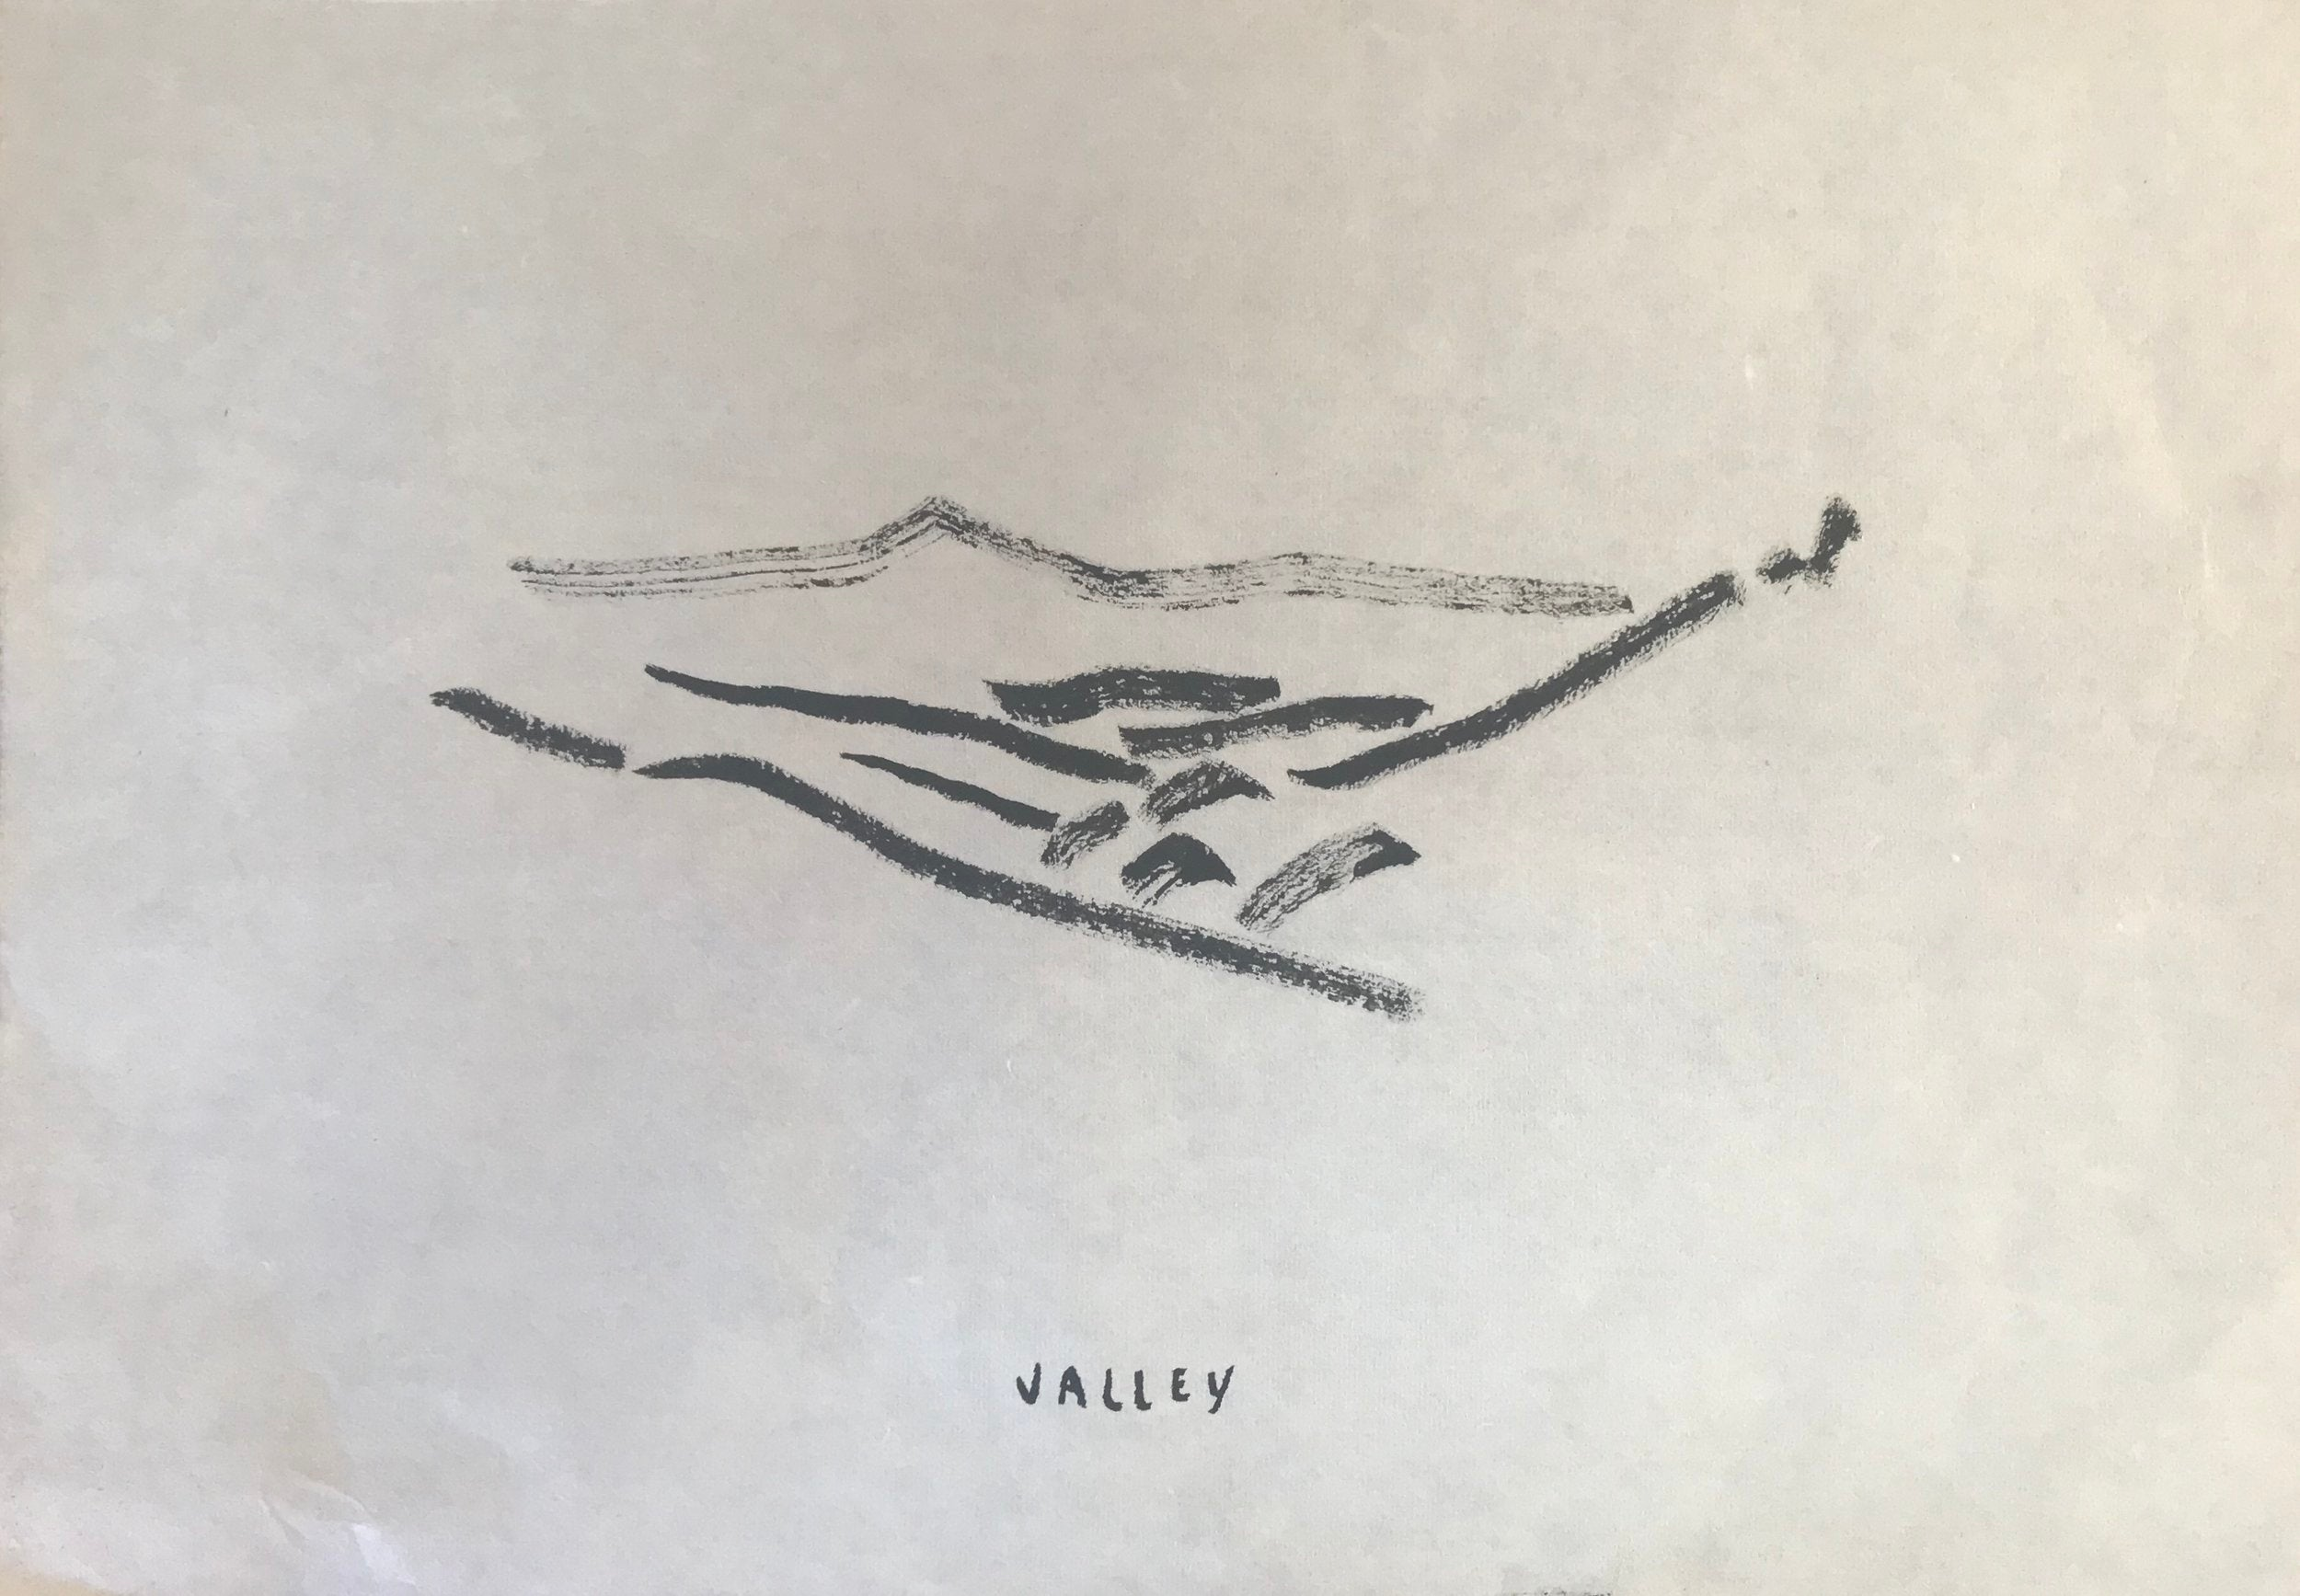 10/26/2019 6:30PM-8:30PM | DINNER WITH EMMA LIPP AND VALLEY